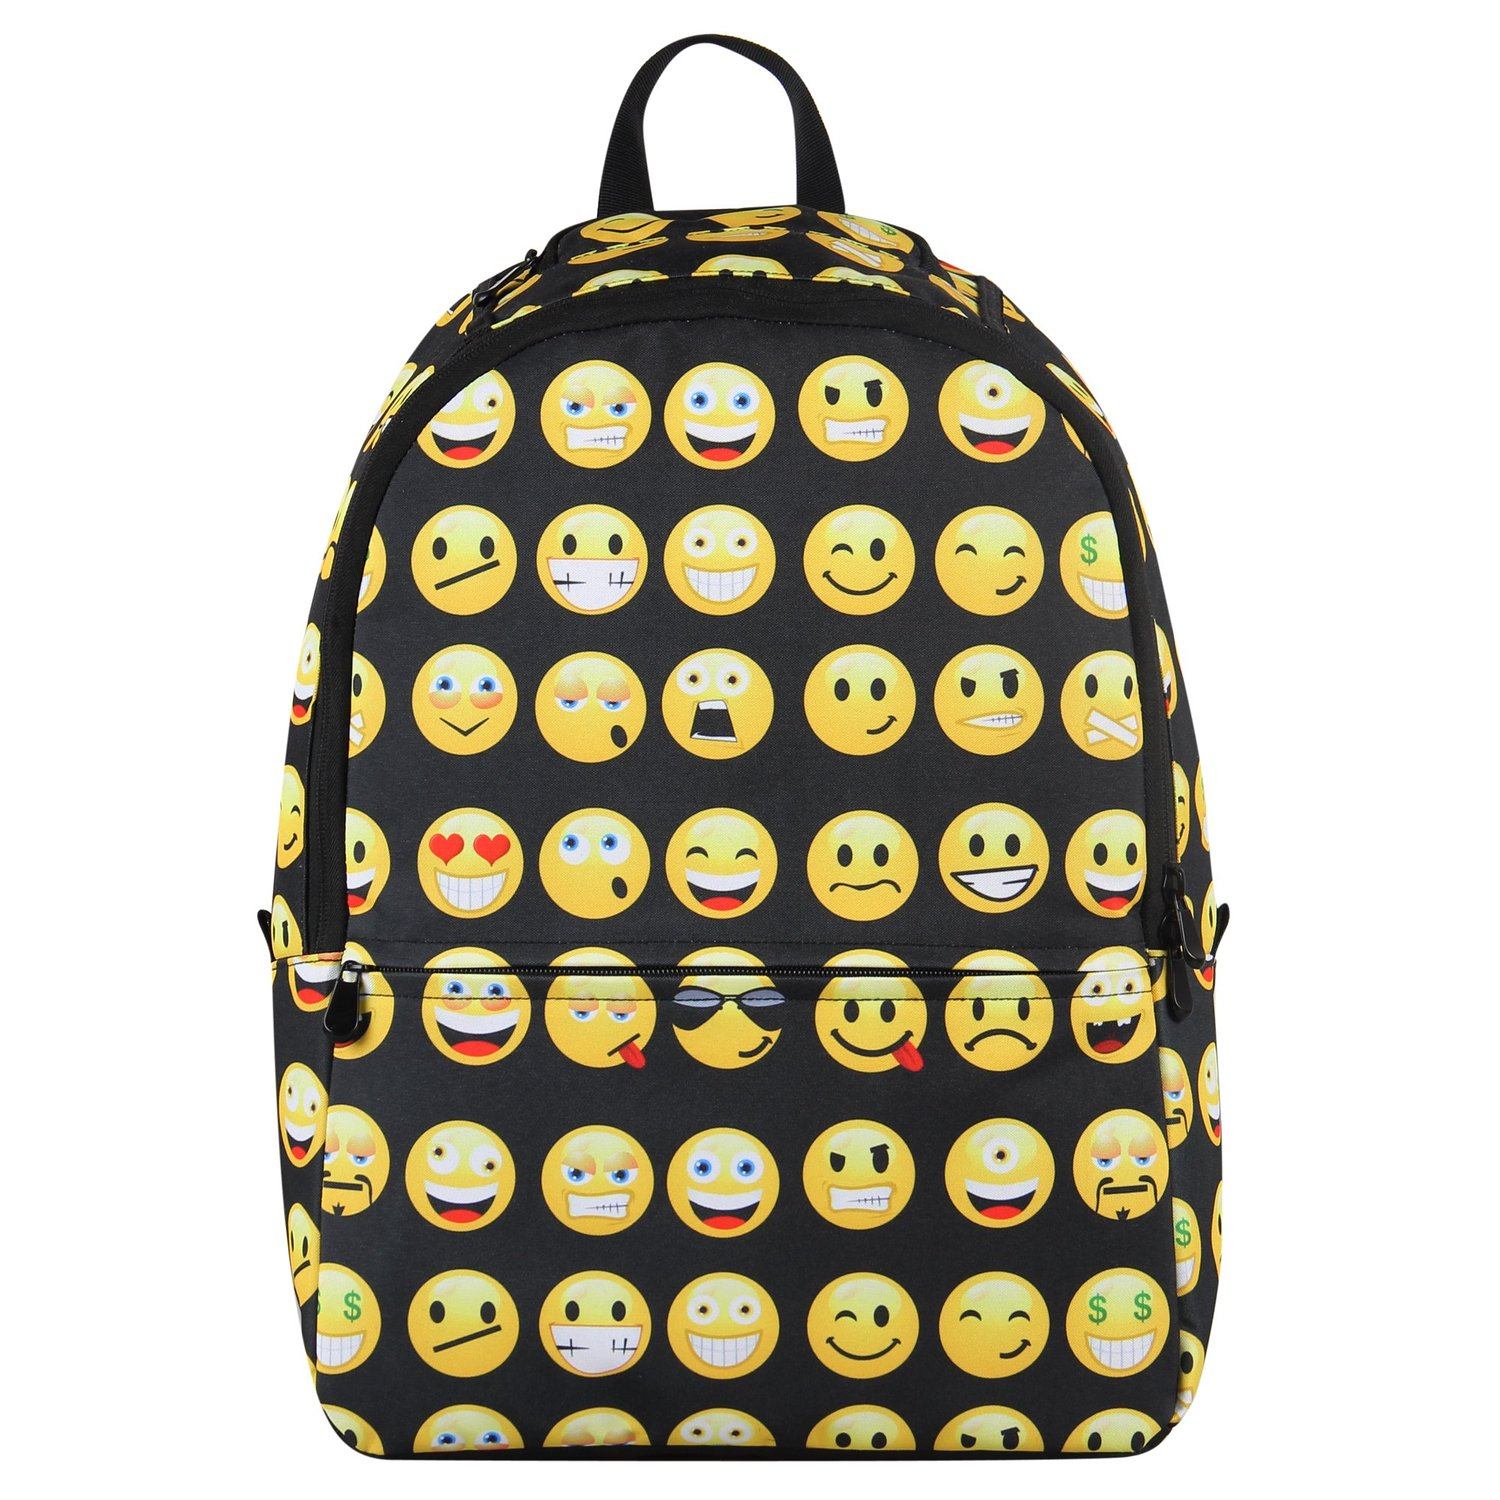 Amazon.com: Hynes Eagle New Fashion Designer Backpack Smiling Face Casual Daypacks Emoji School Book Bags (Black): Clothing